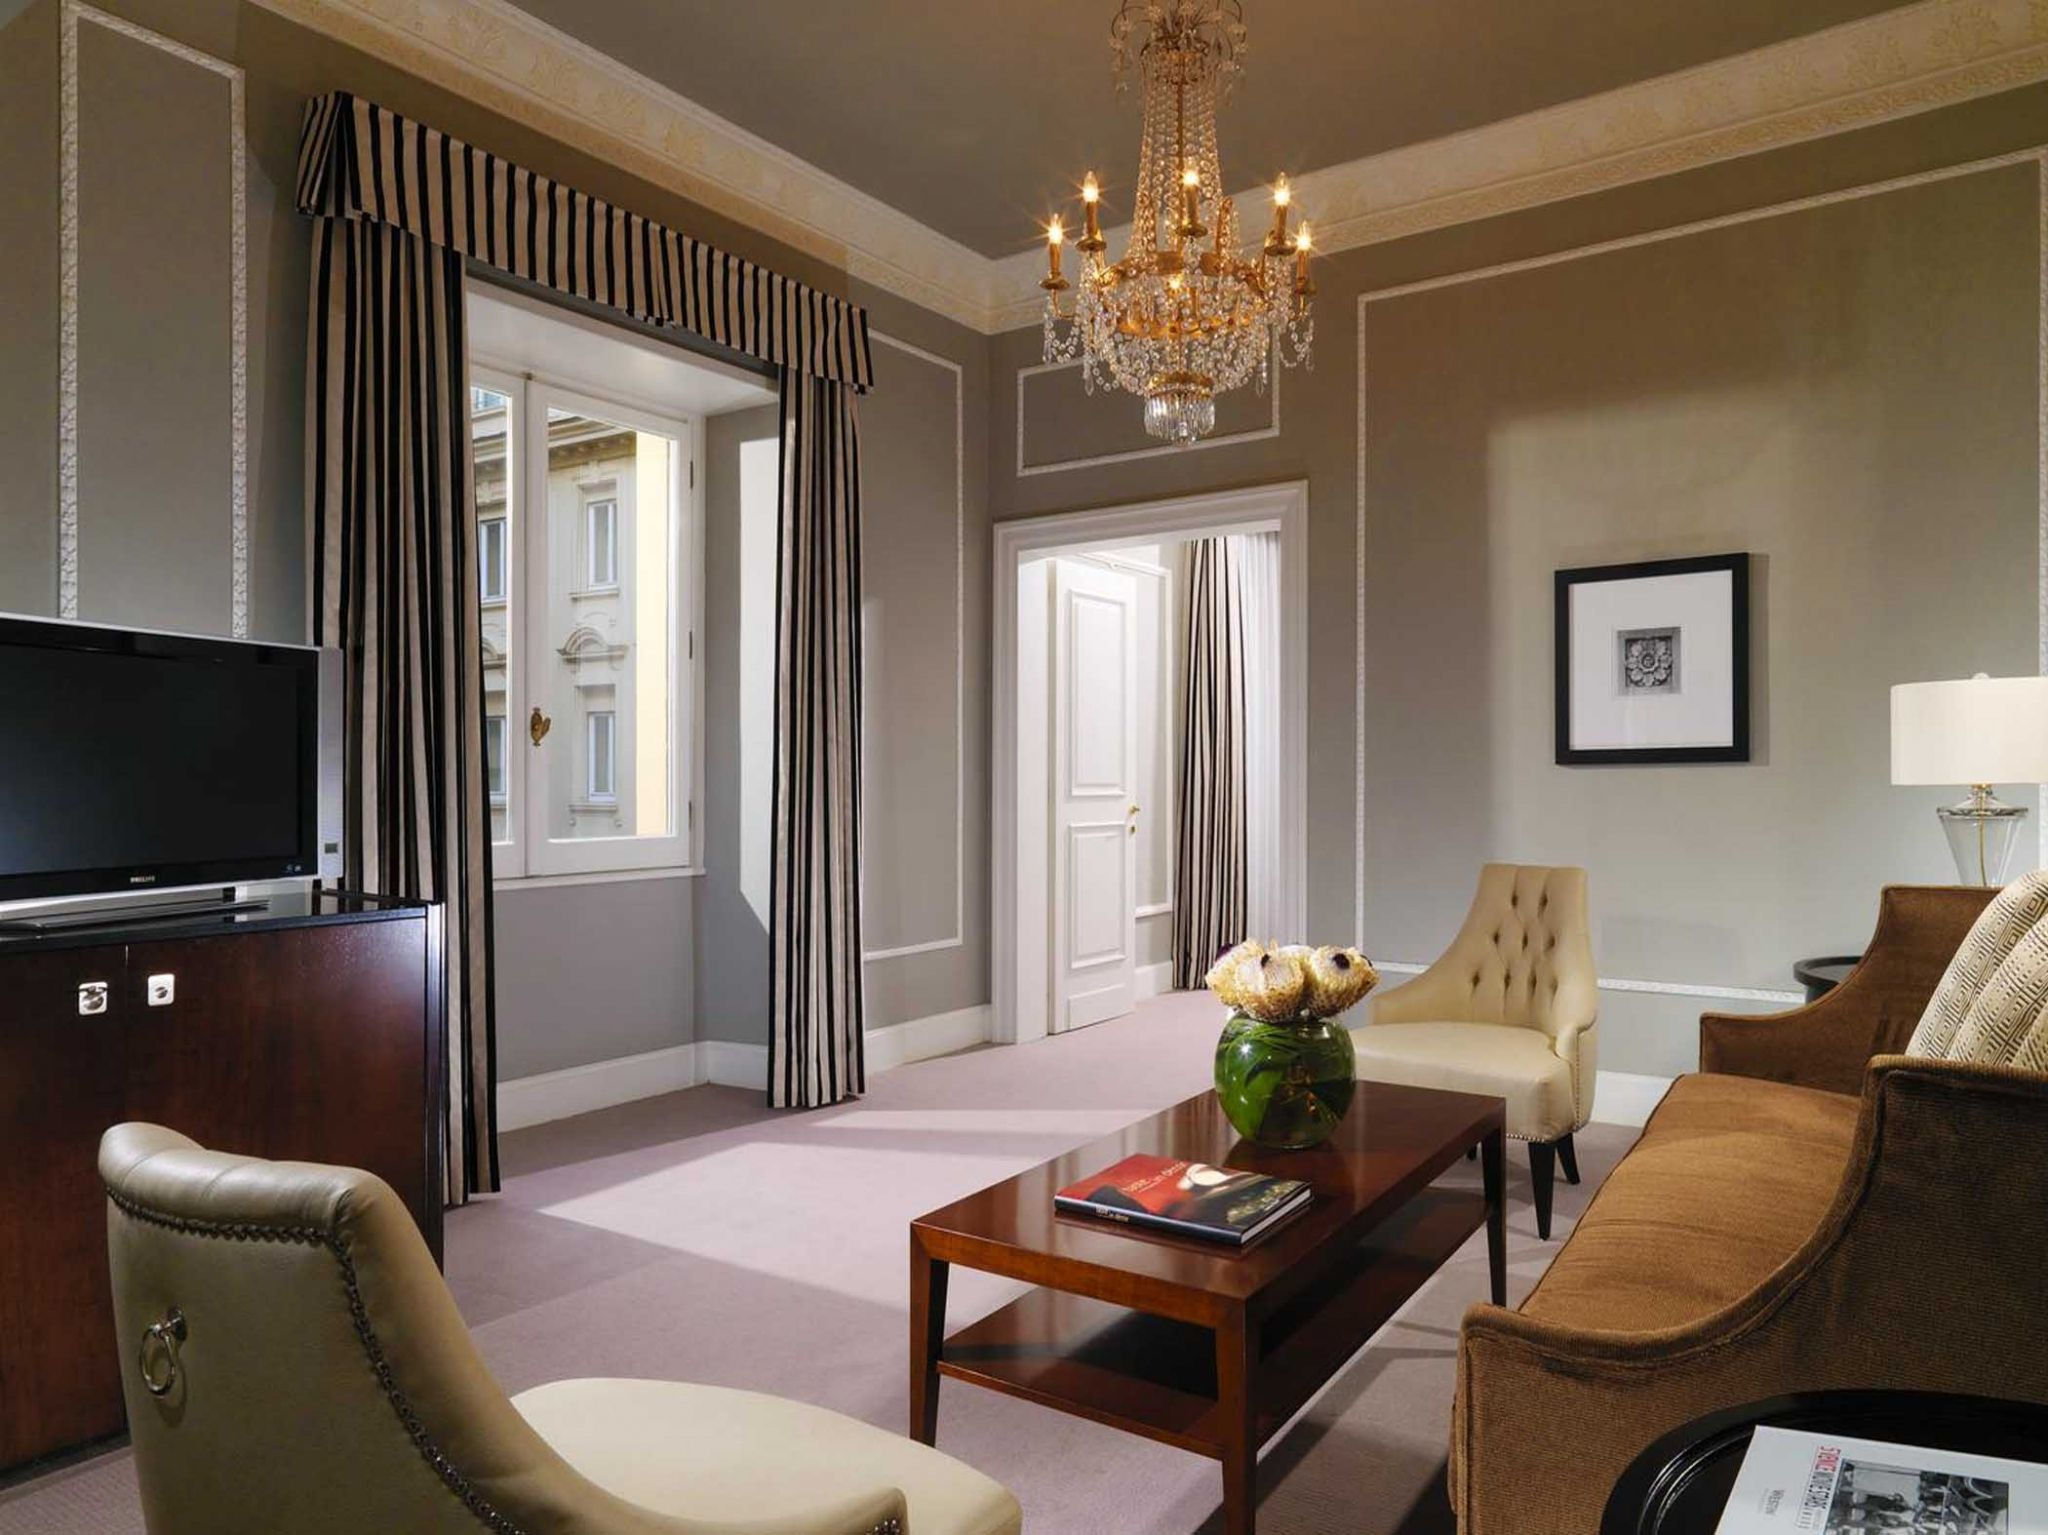 Grandluxe suite at The Westin Excelsior Rome